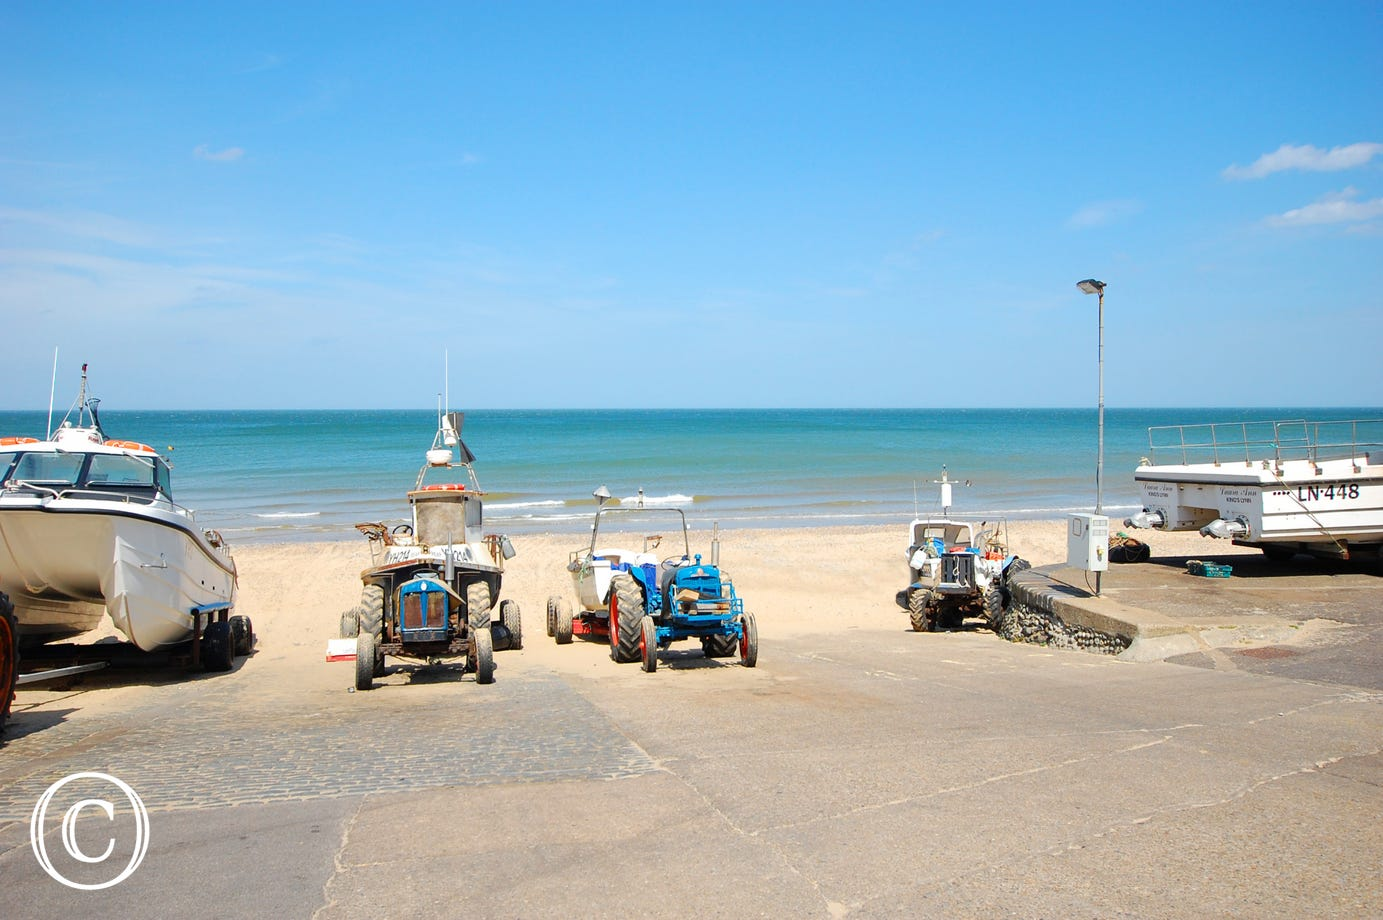 Boats and tractors lined up on the beach.